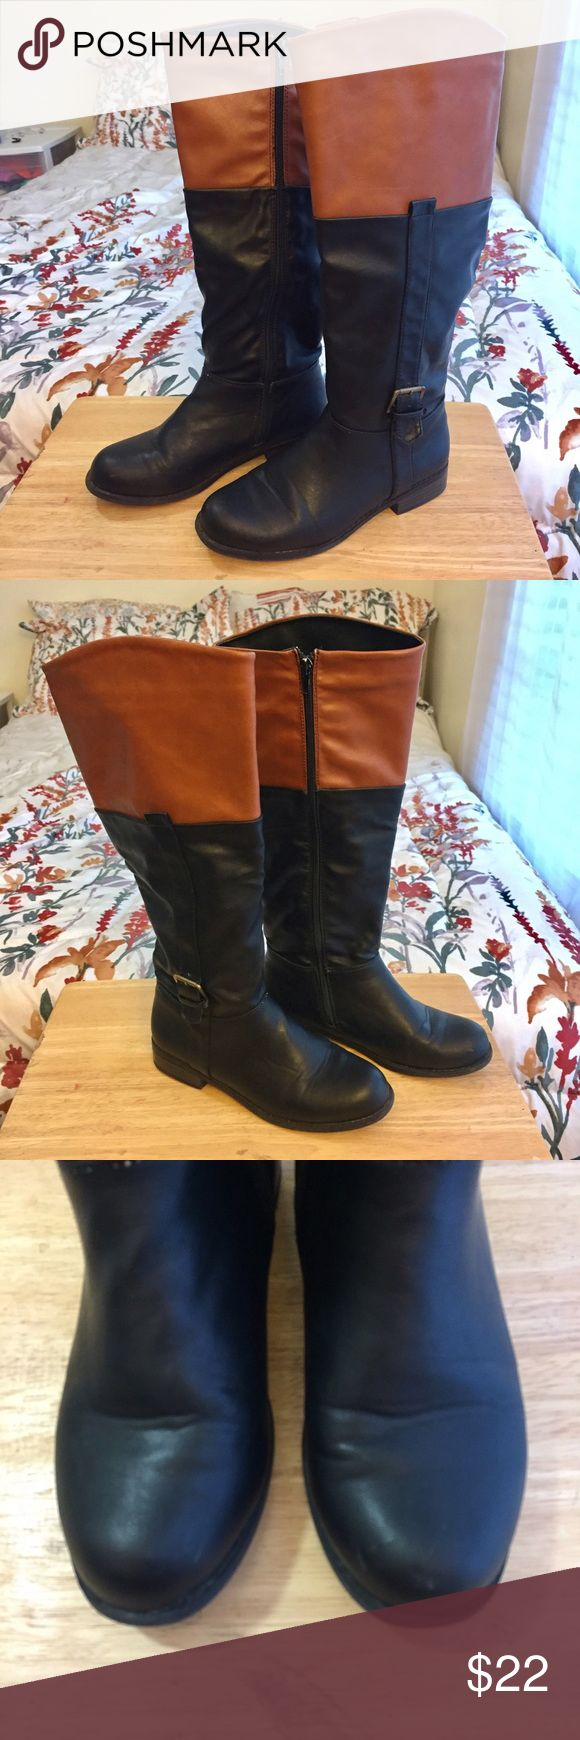 Charlotte Russe | Two Tone Black/Camel Riding Boot Charlotte Russe | Two Tone Black/Camel Riding Boots. Zipper Close for easy on/off, retail price $42.50. Has been worn ~8 times and still is in great condition with only minor creases in the front! Original box included Charlotte Russe Shoes Over the Knee Boots